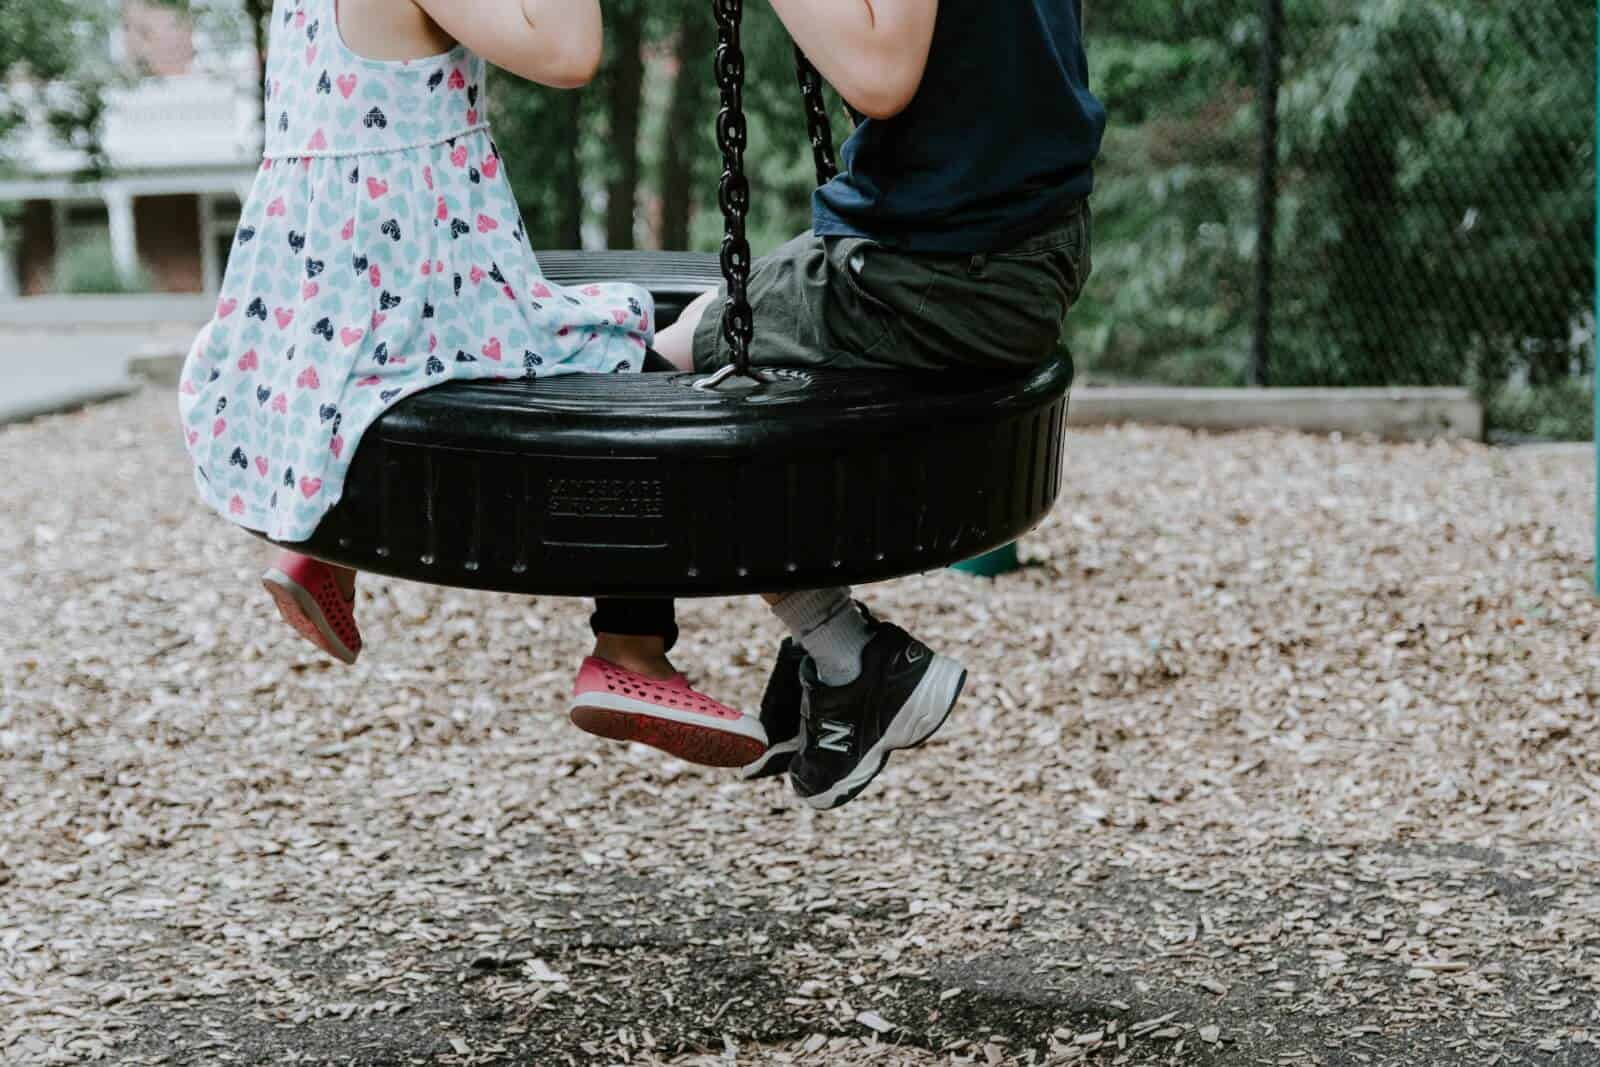 Why Would Anyone Let Their Kid Play >> 6 Reasons To Let Your Kids Just Play On The Playground